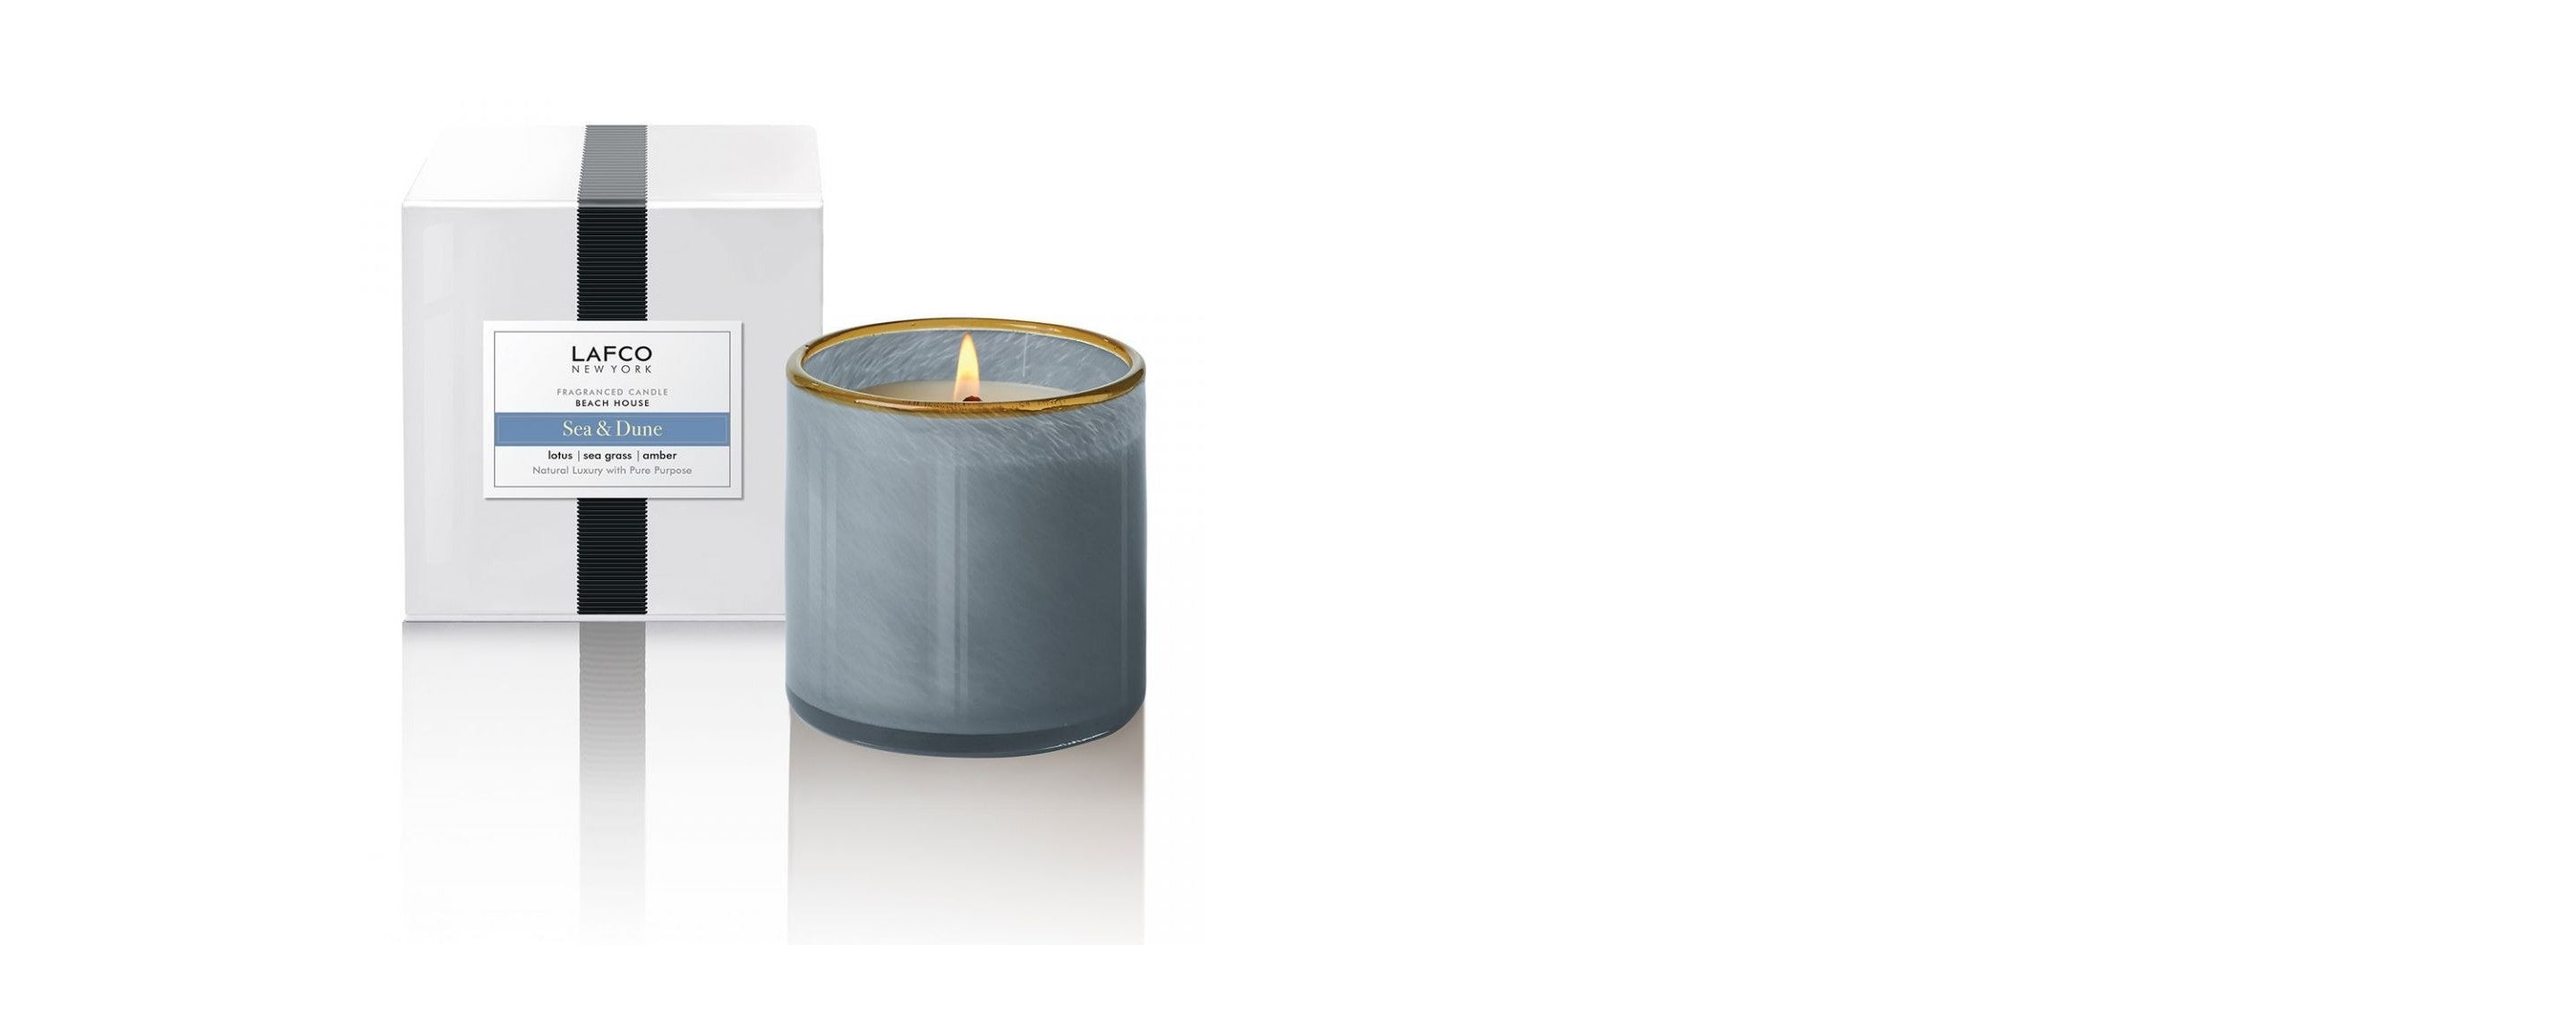 sea & dune beach house candle by lafco new york